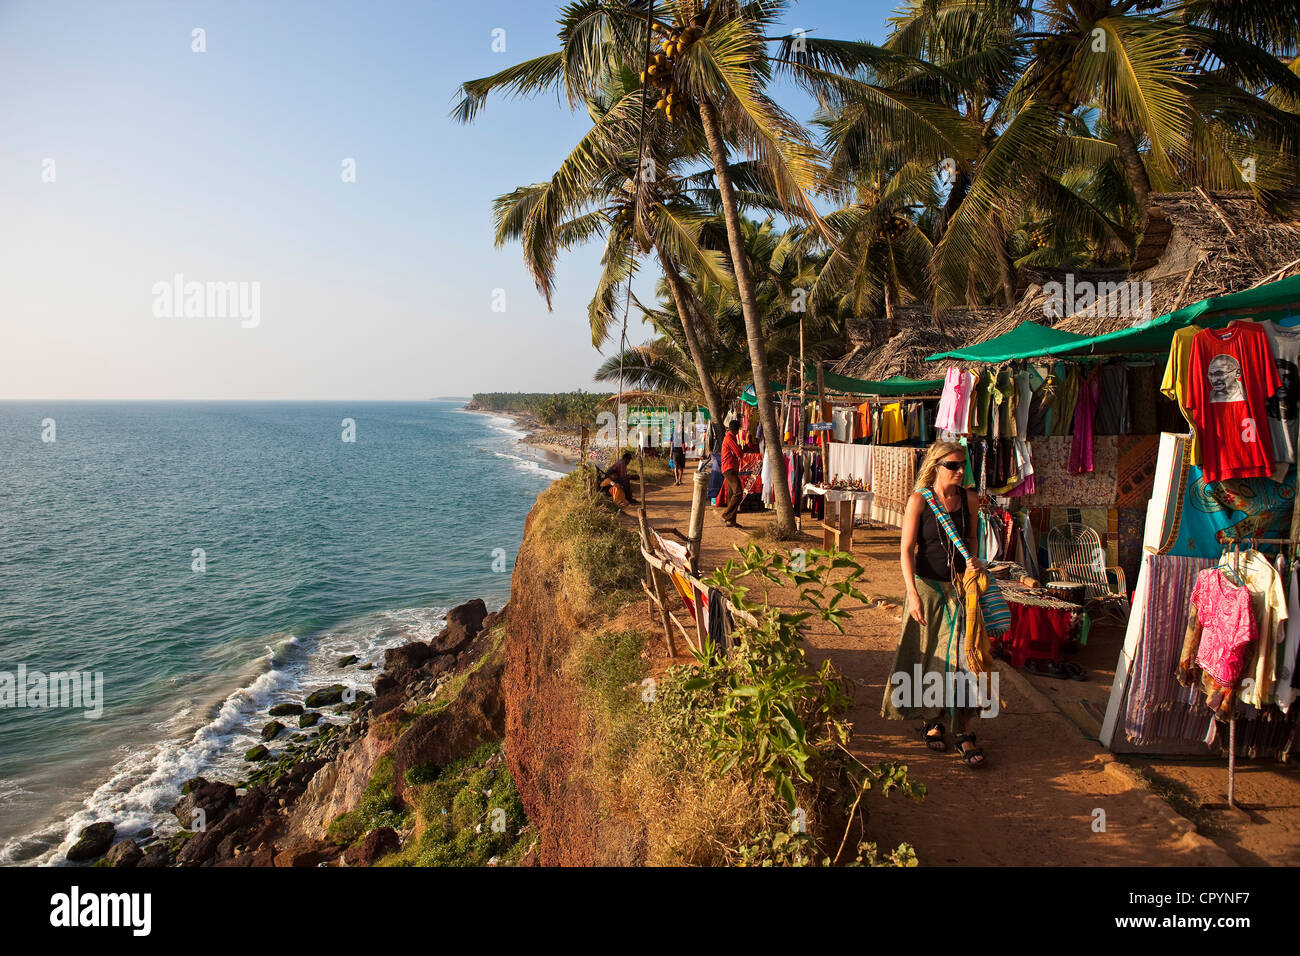 India, Kerala State, Varkala, seaside resort at the top of a cliff Stock Photo